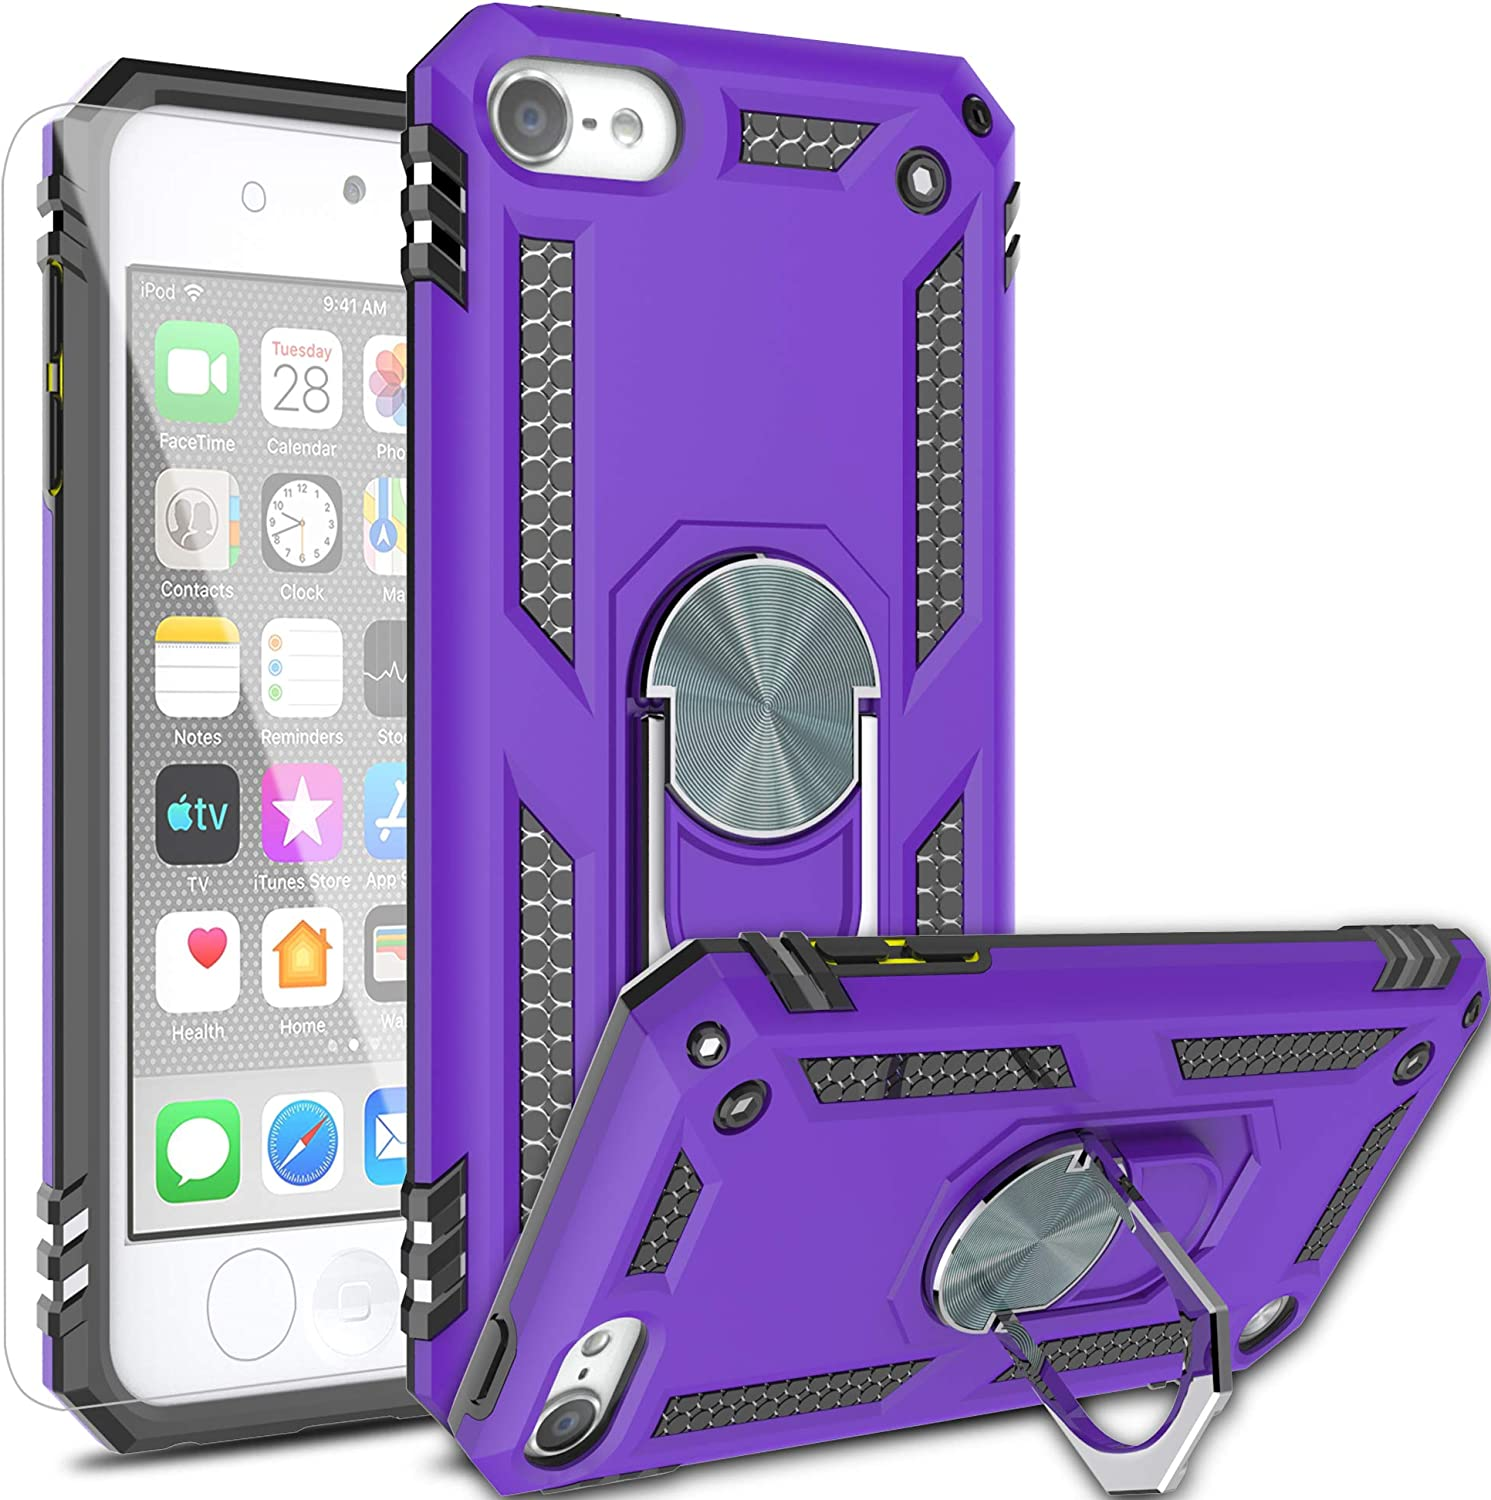 AYMECL iPod Touch 5/6/7 Case with HD Screen Protector,[Military Grade] 360 Degree Magnetic Support Metal Ring Armor Shockproof Cover for Apple iPod Touch 7th/6th/5th Generation-ST Purple